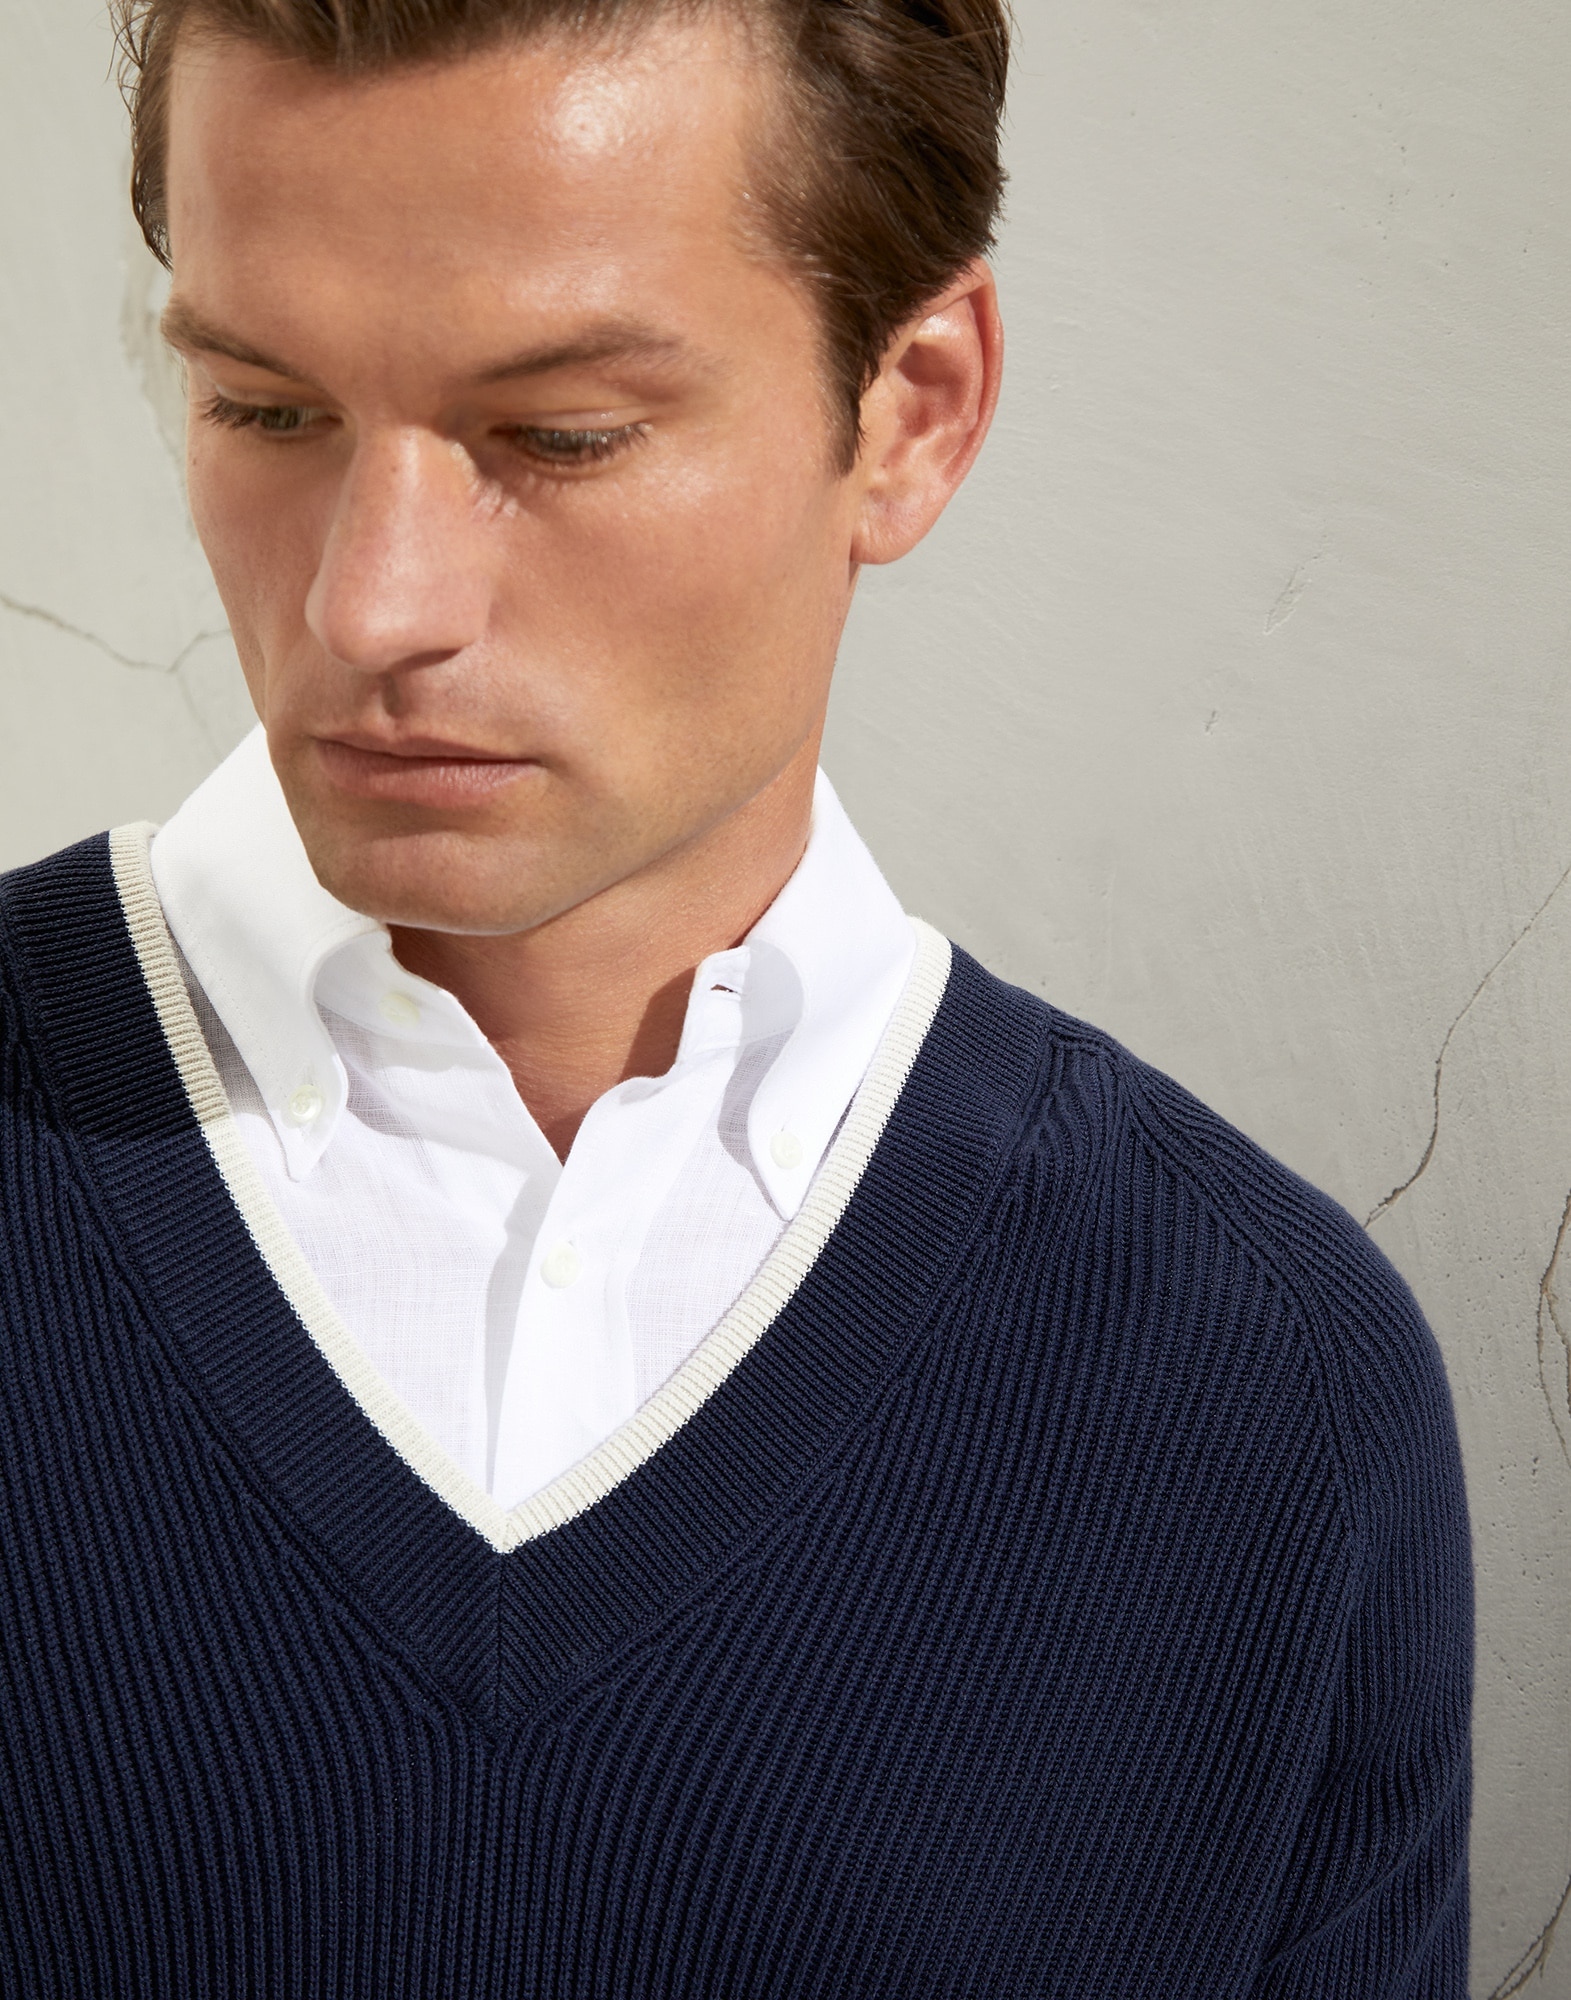 V-neck Sweater - Detail view